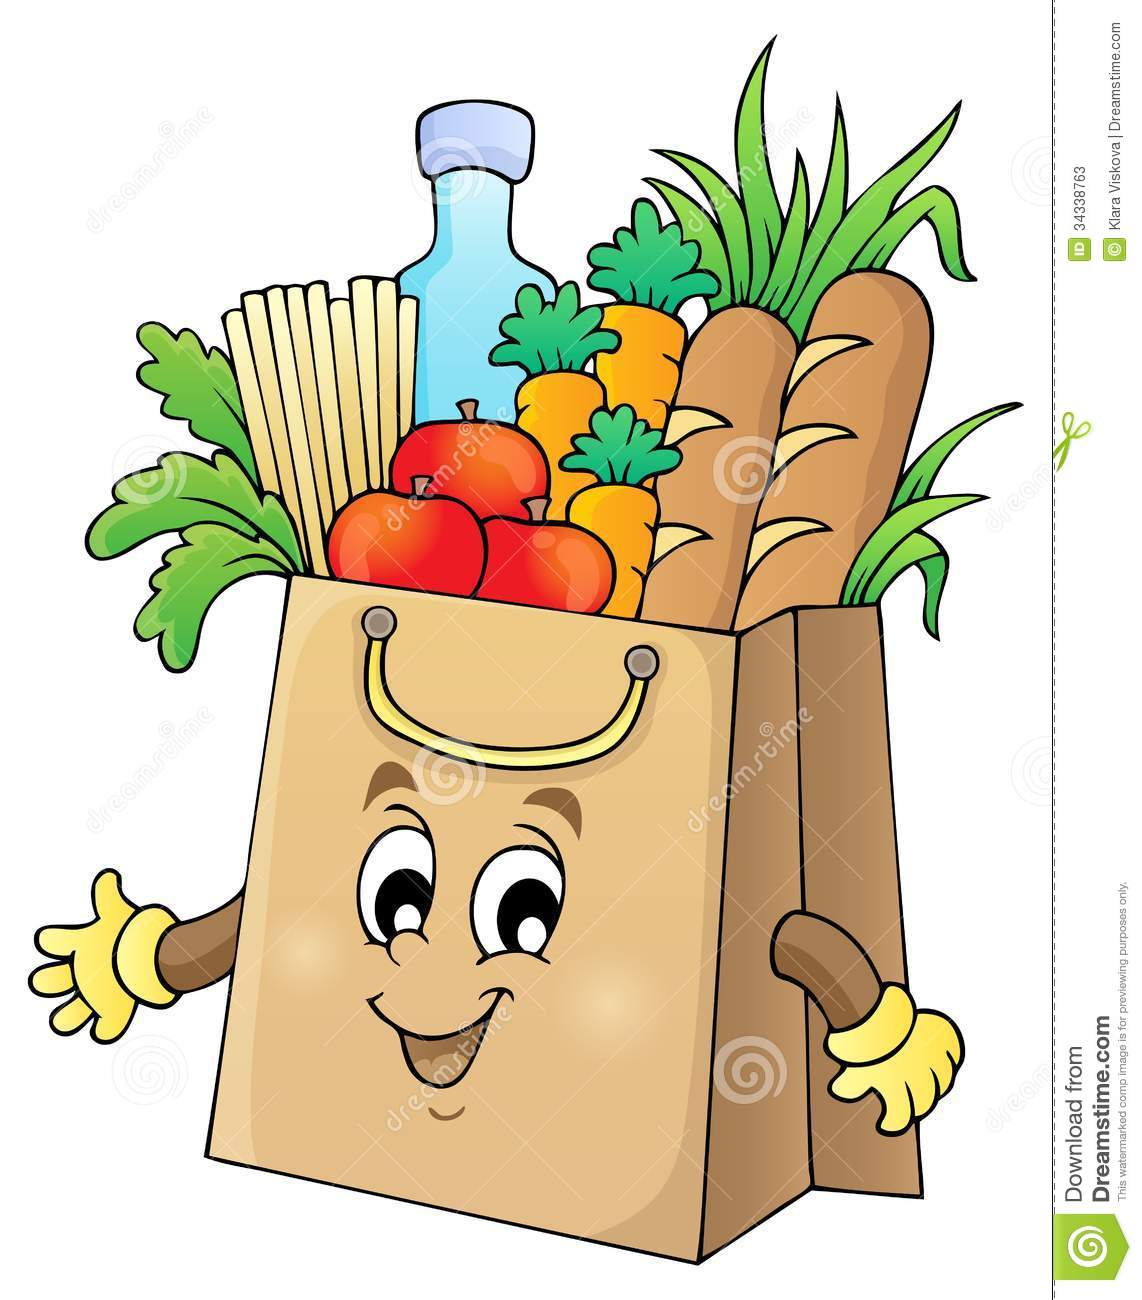 Grocery bags of food clipart.